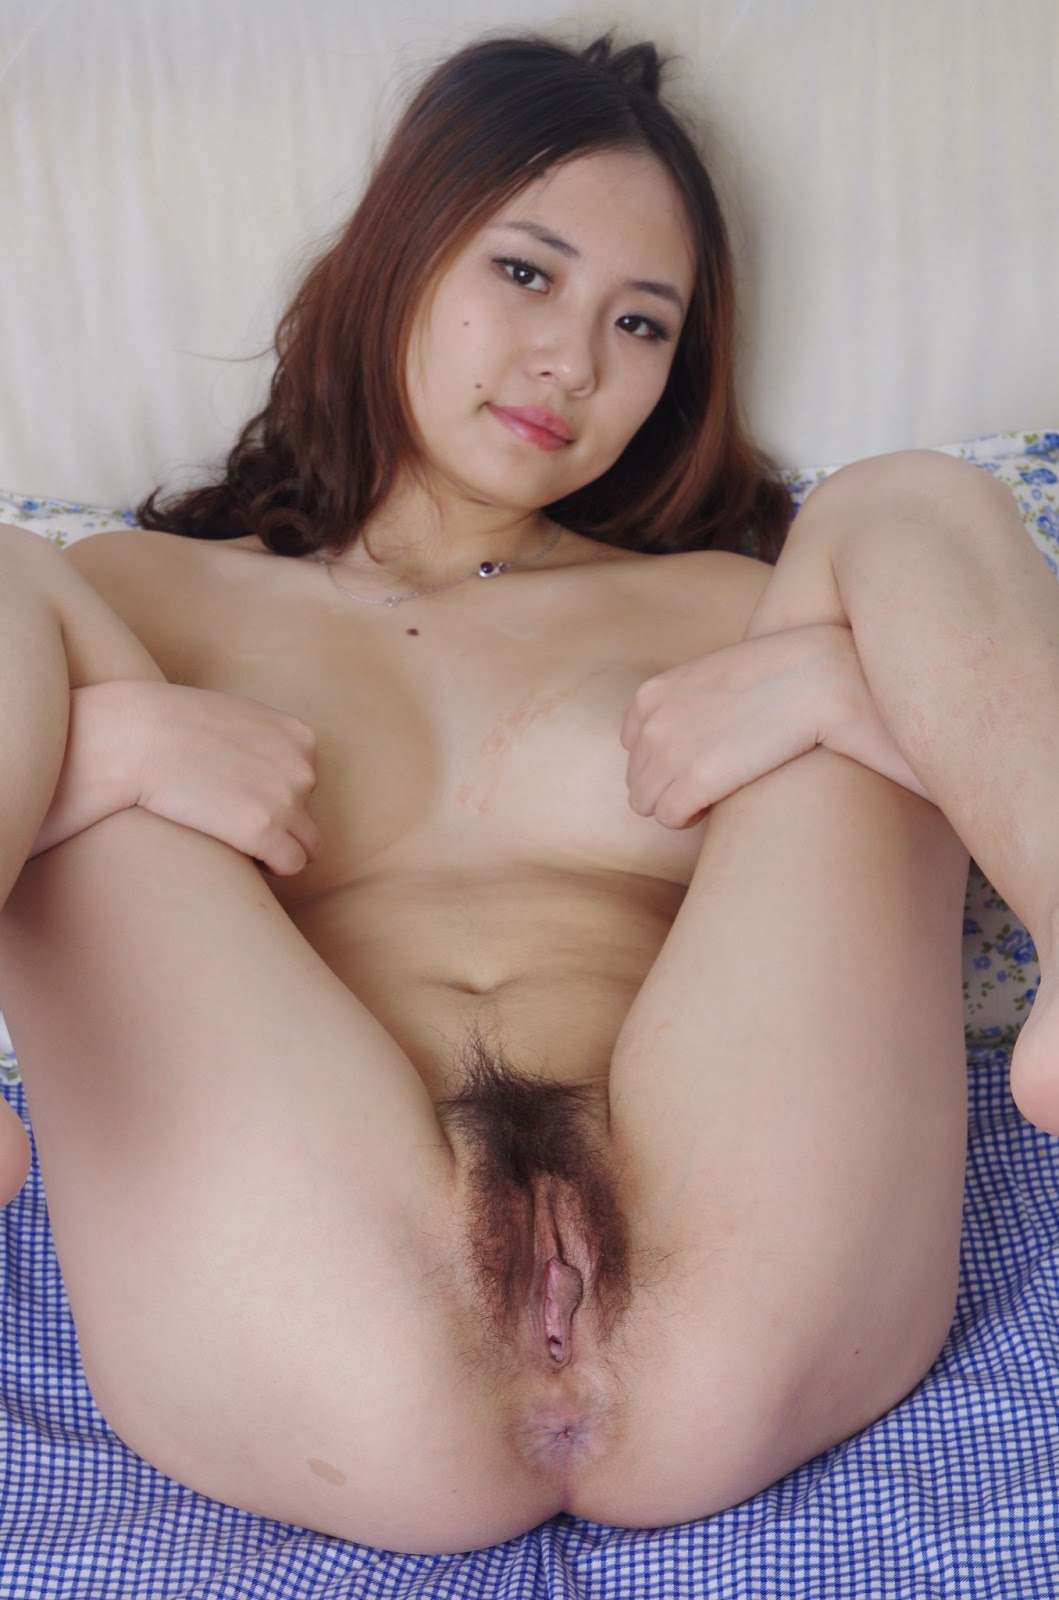 cute nude girl